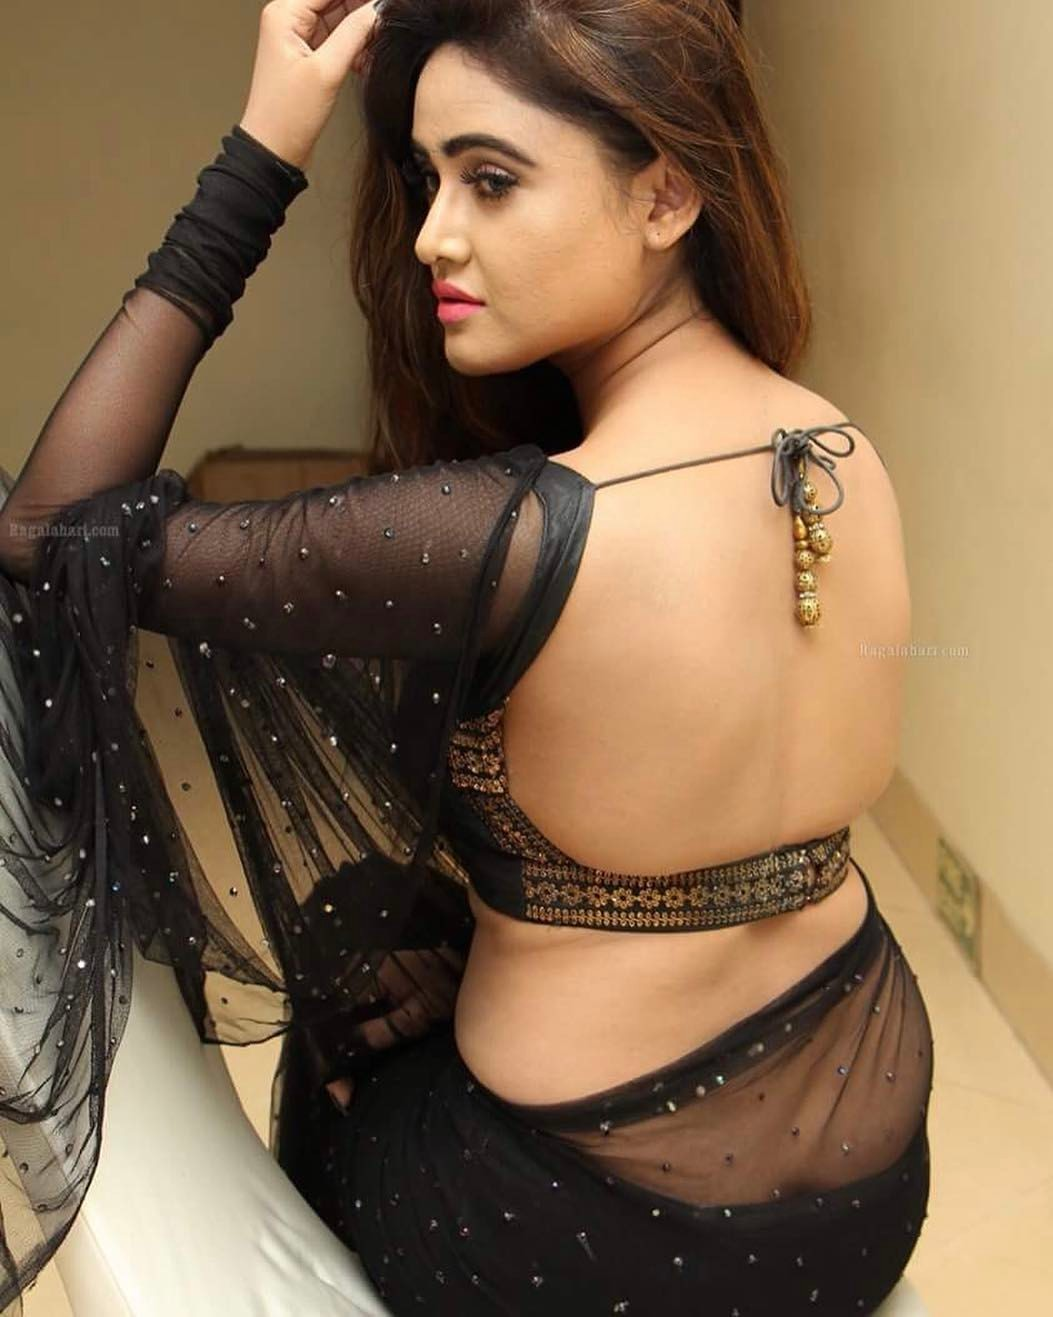 Indian Escorts in Sydney